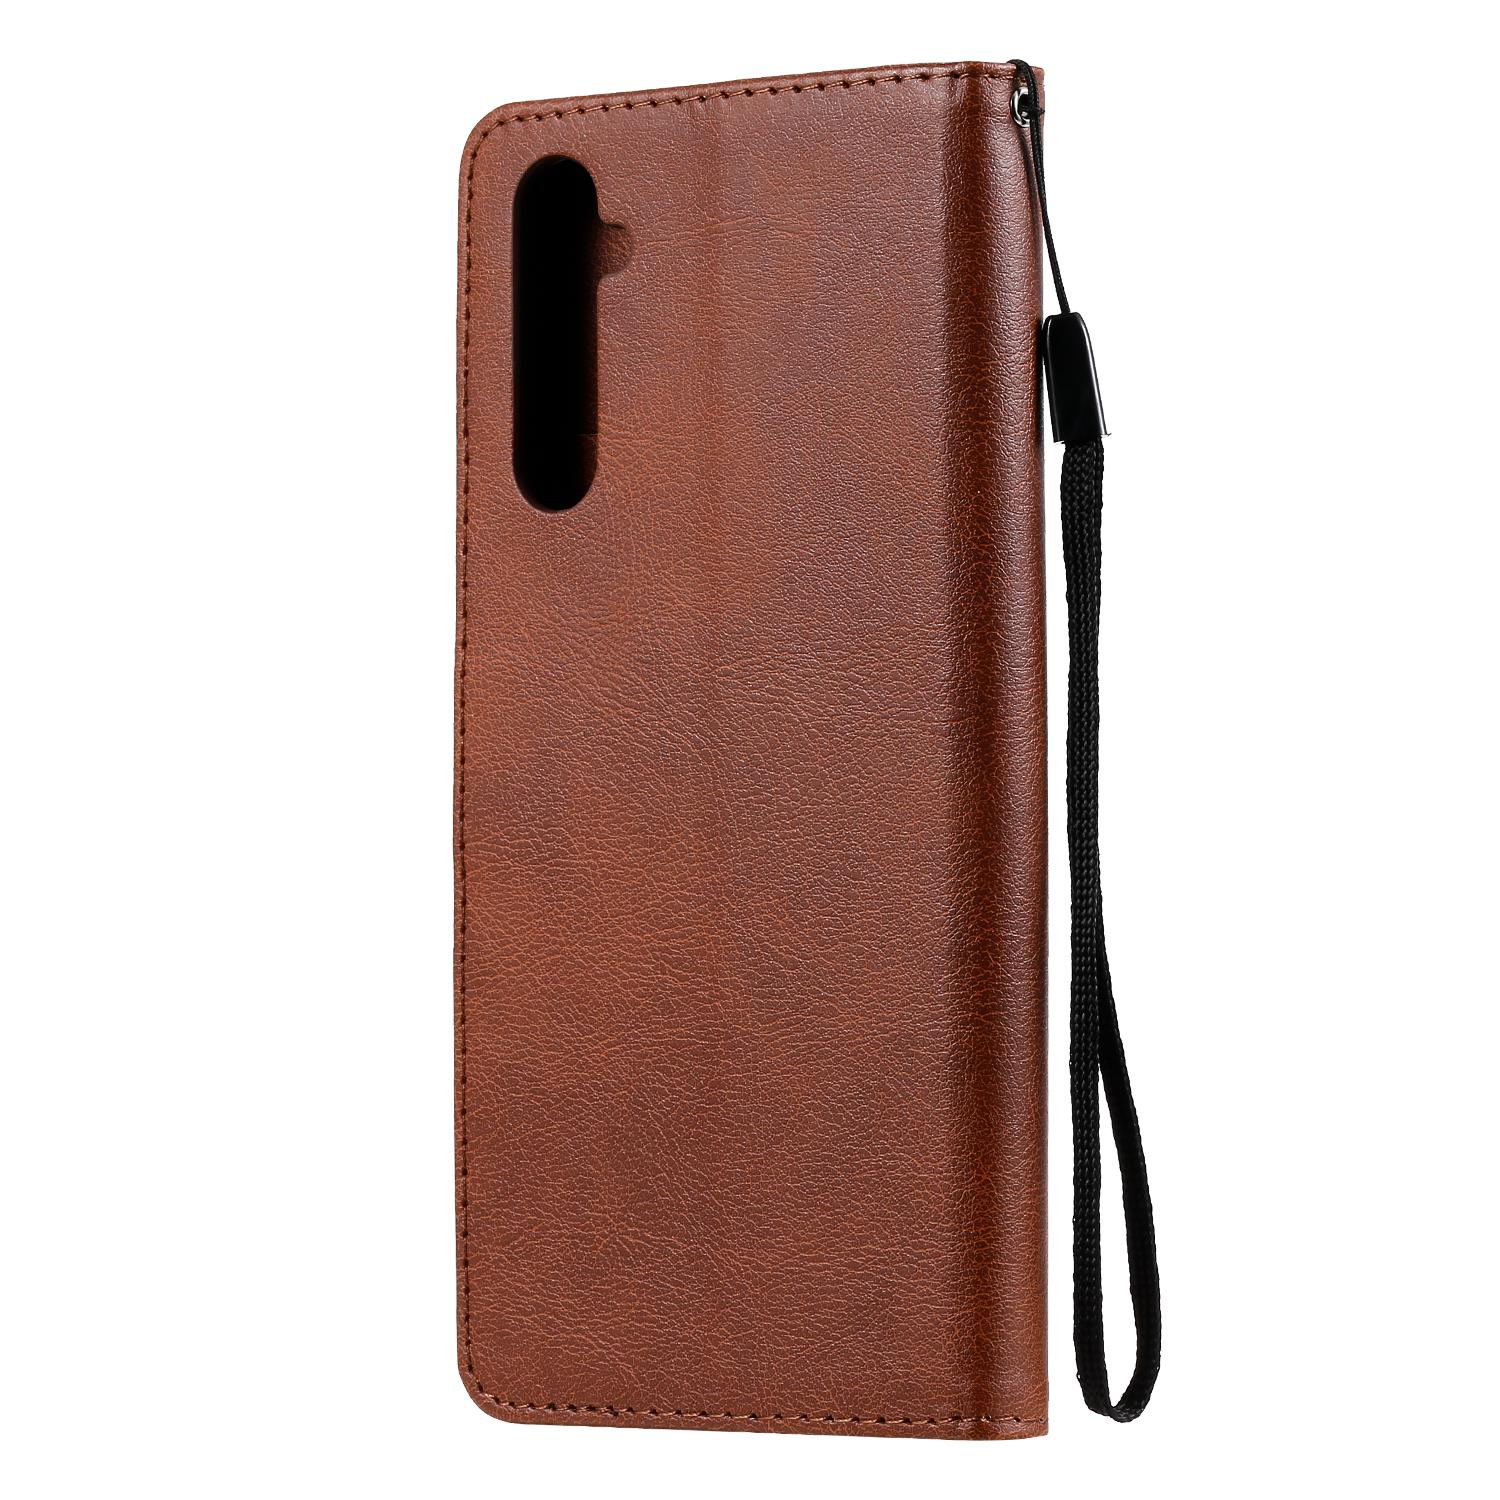 fitBAG Beat Black custom tailored sleeve for Oppo Realme 6 Pro Fine nappa leather pouch case cover with MicroFibre lining for display cleaning Made in Germany